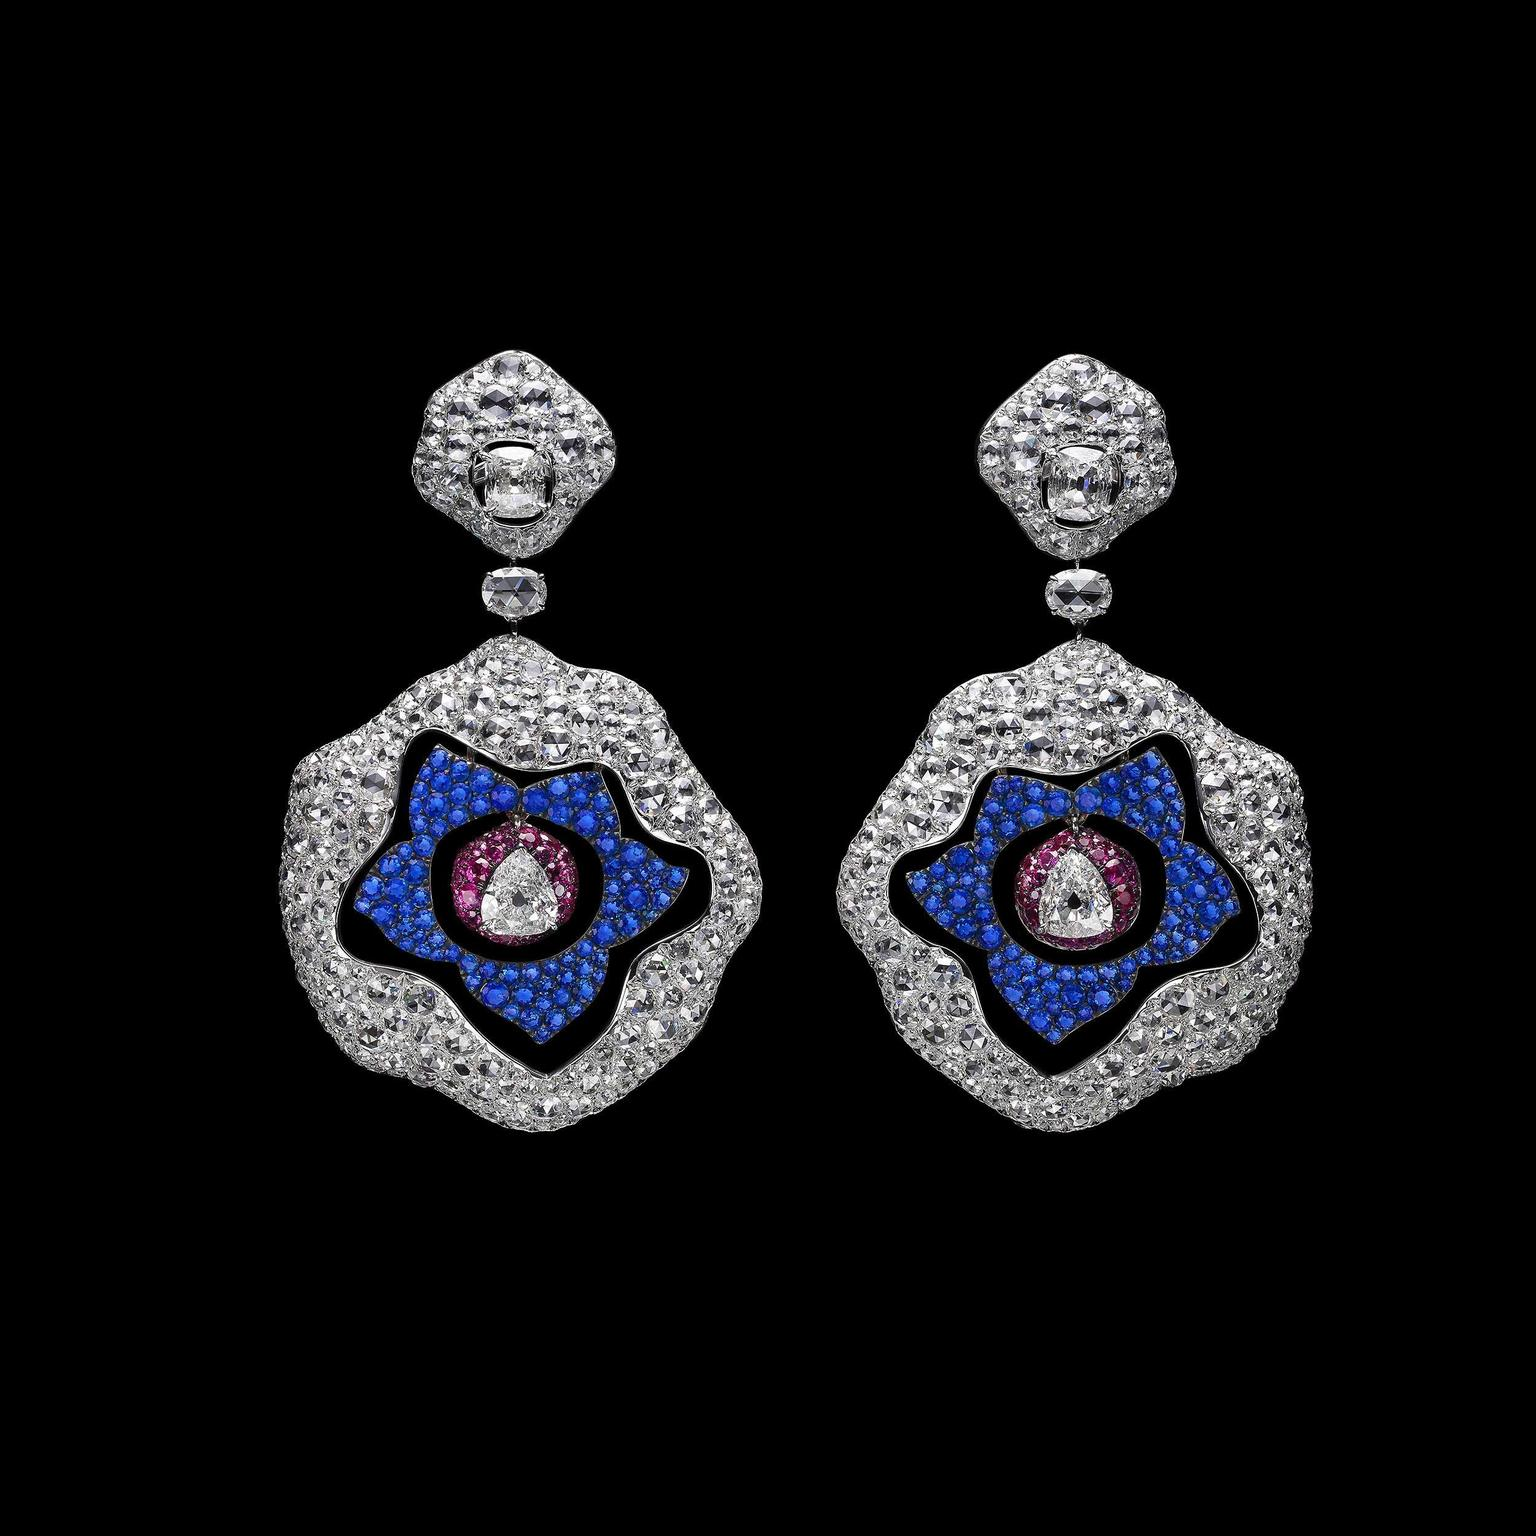 Carnet Diamond and Huaynite earrings